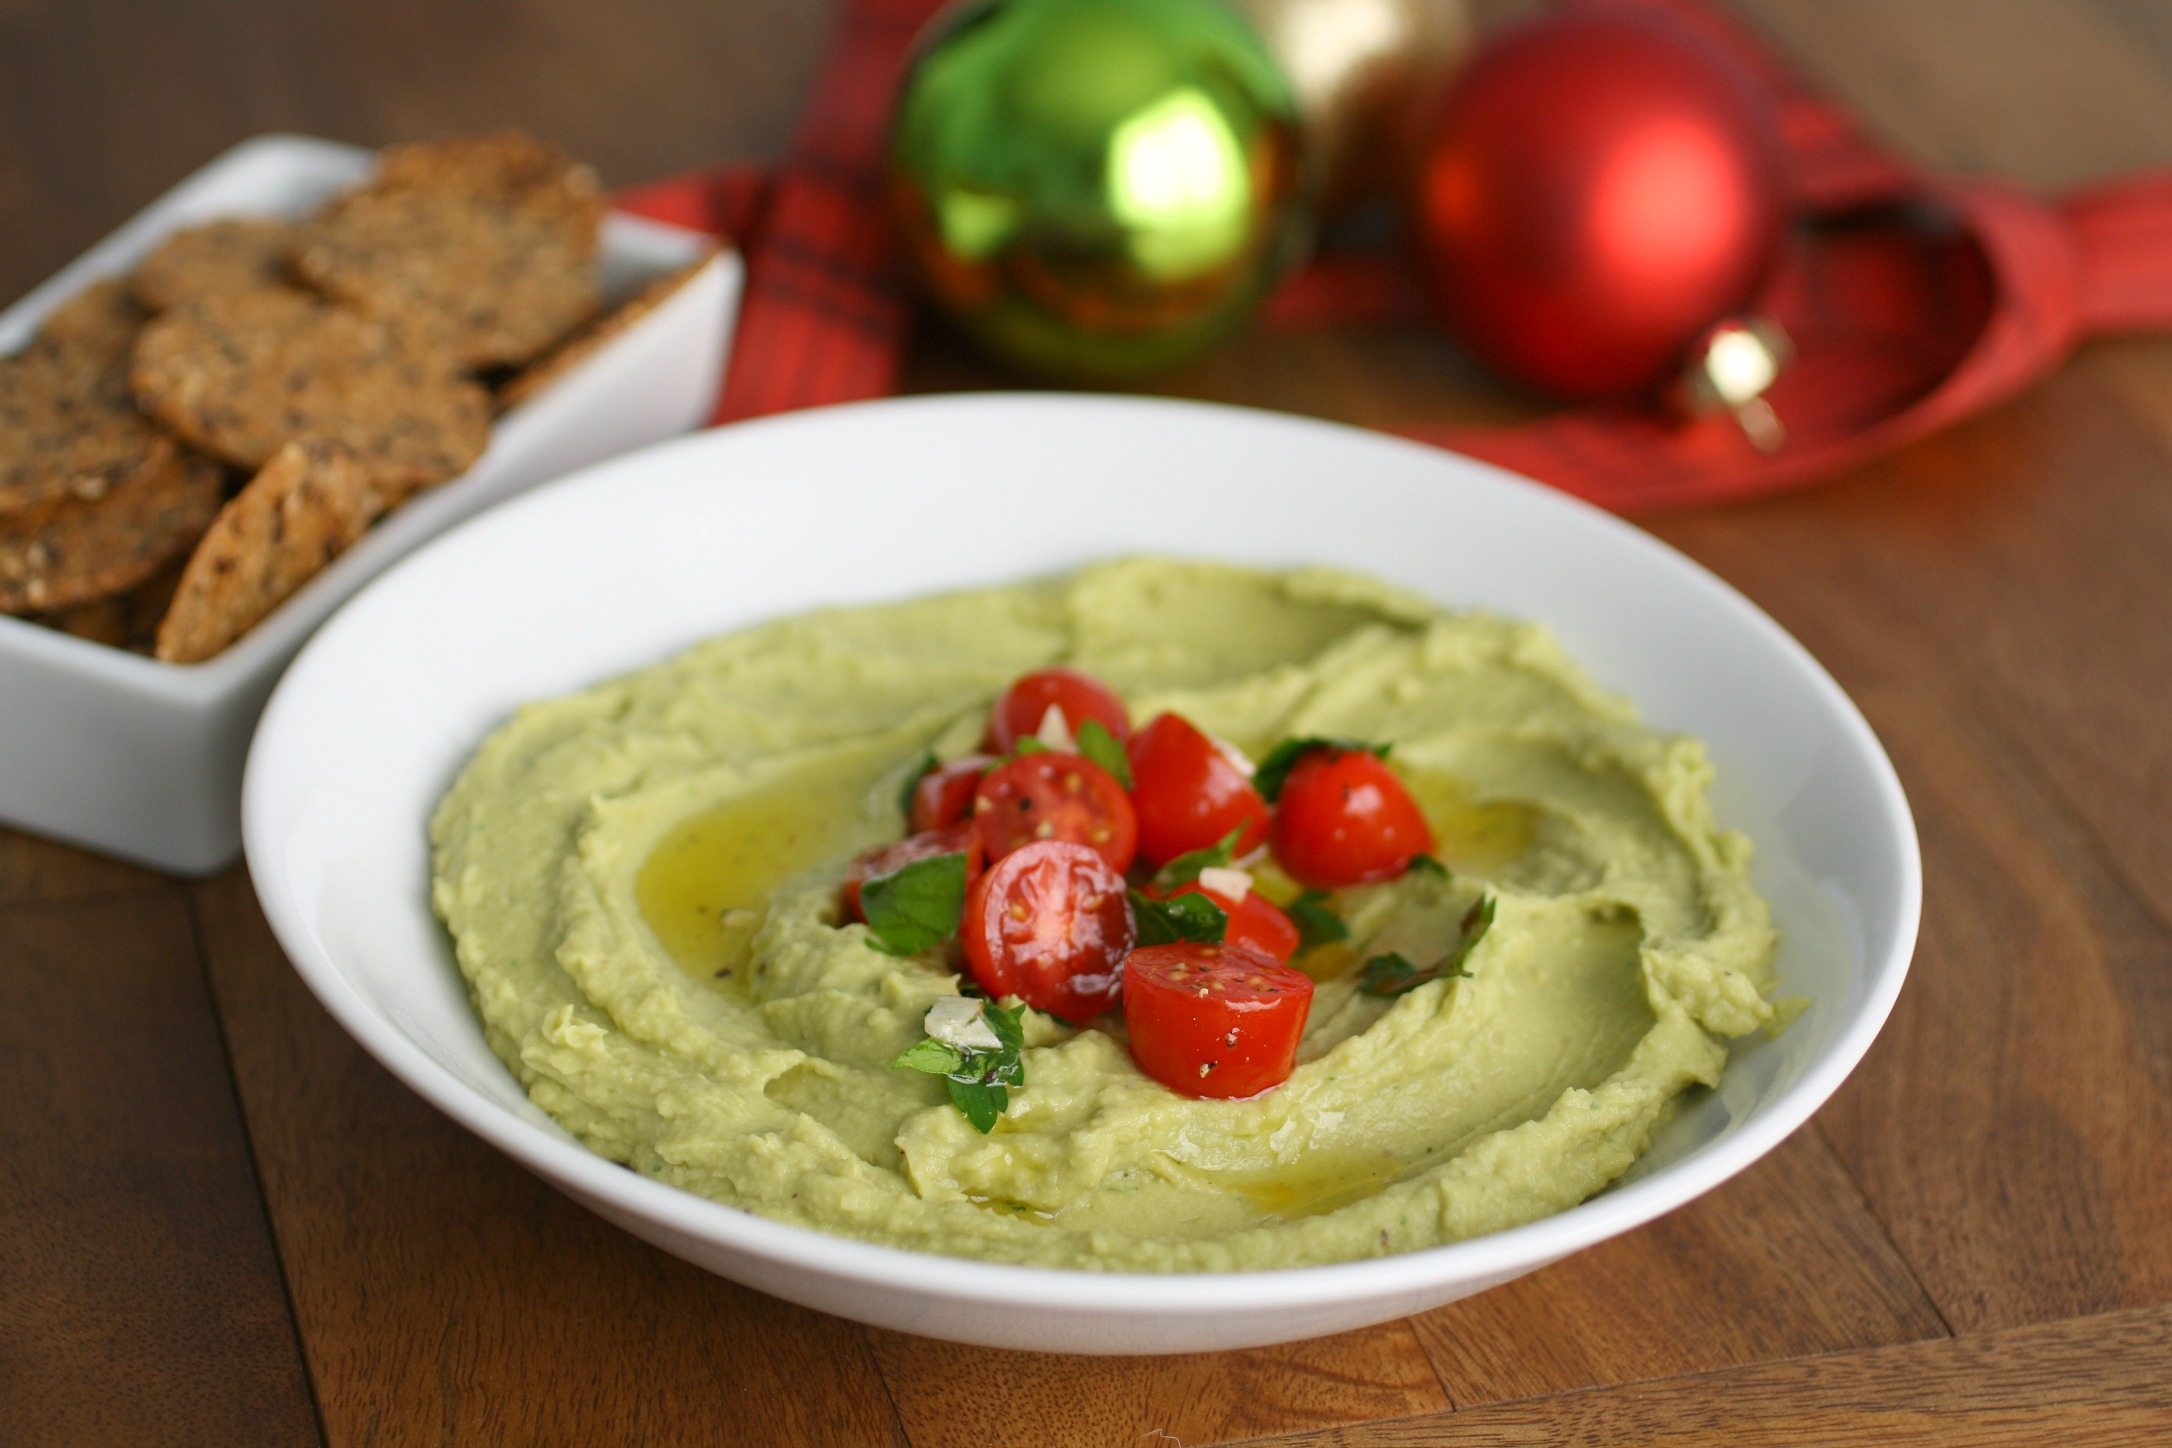 Avocado Hummus (Vegan recipe)